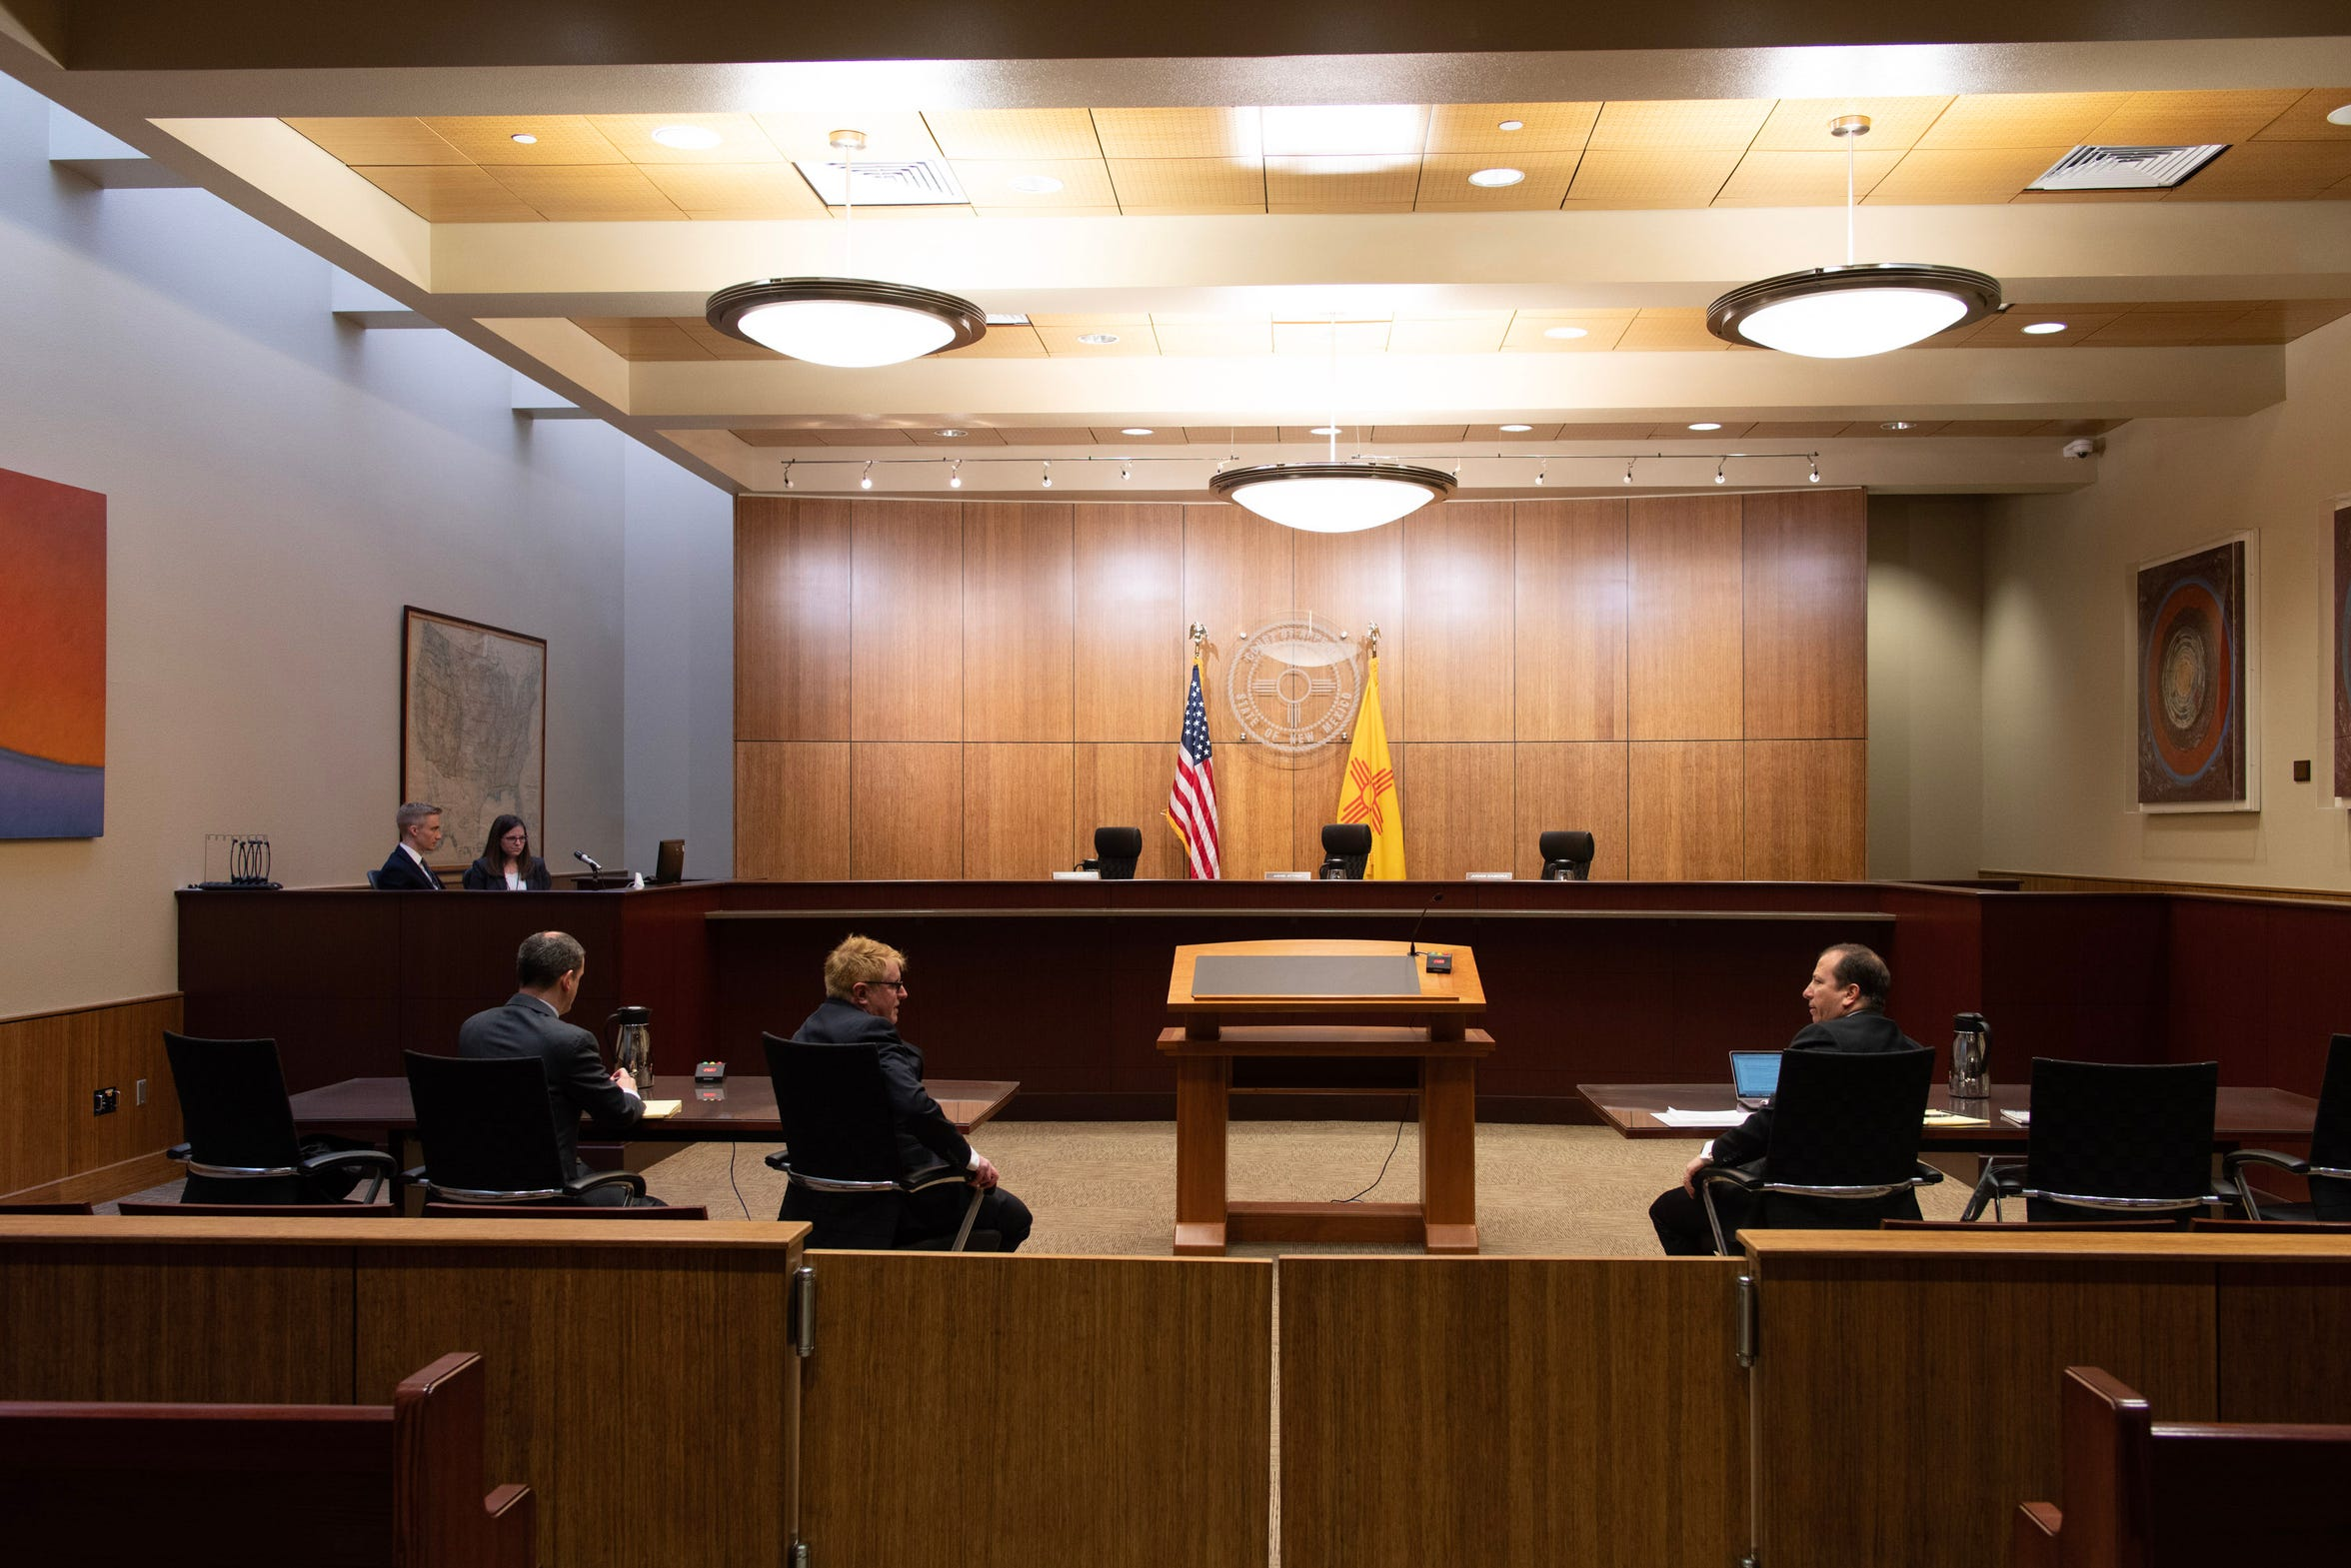 Attorneys wait for the judges to arrive to hear oral arguments in the New Mexico Court of Appeals in Albuquerque.